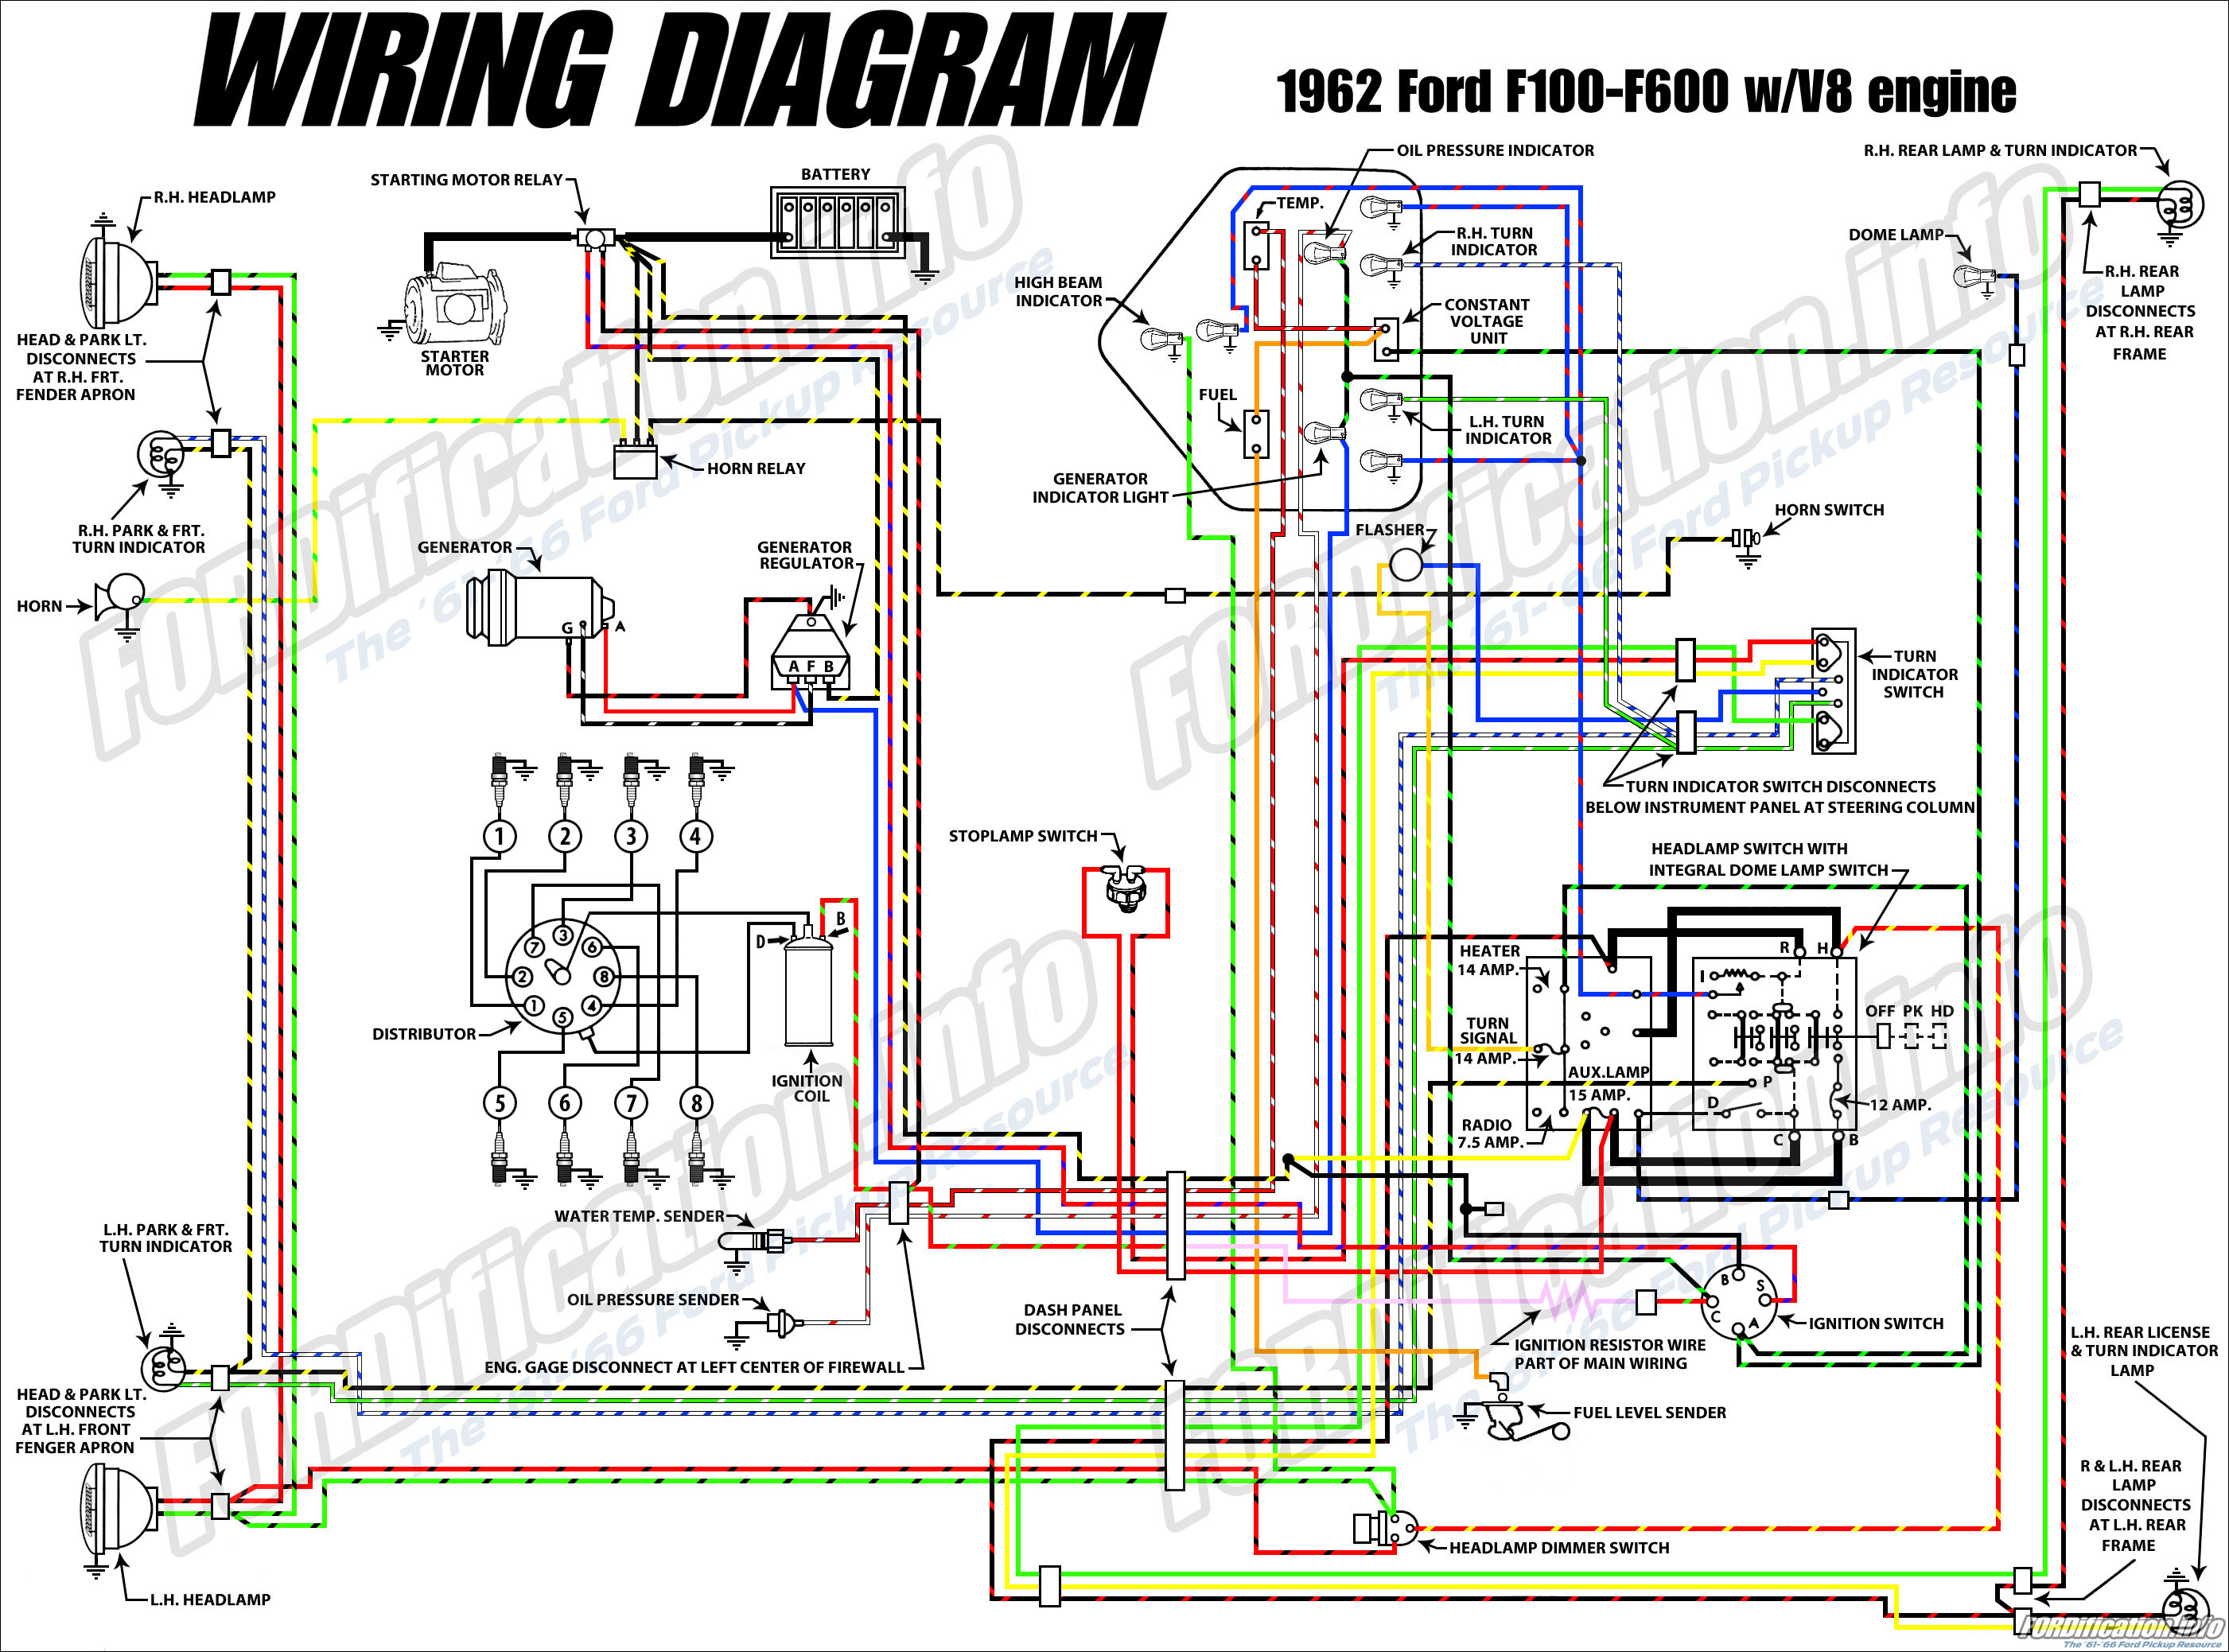 1968 Ford Pickup Wiring Diagram FULL HD Version Wiring Diagram - LOTI- DIAGRAM.EDITIONS-DELPIERRE.FRDiagram Database And Images